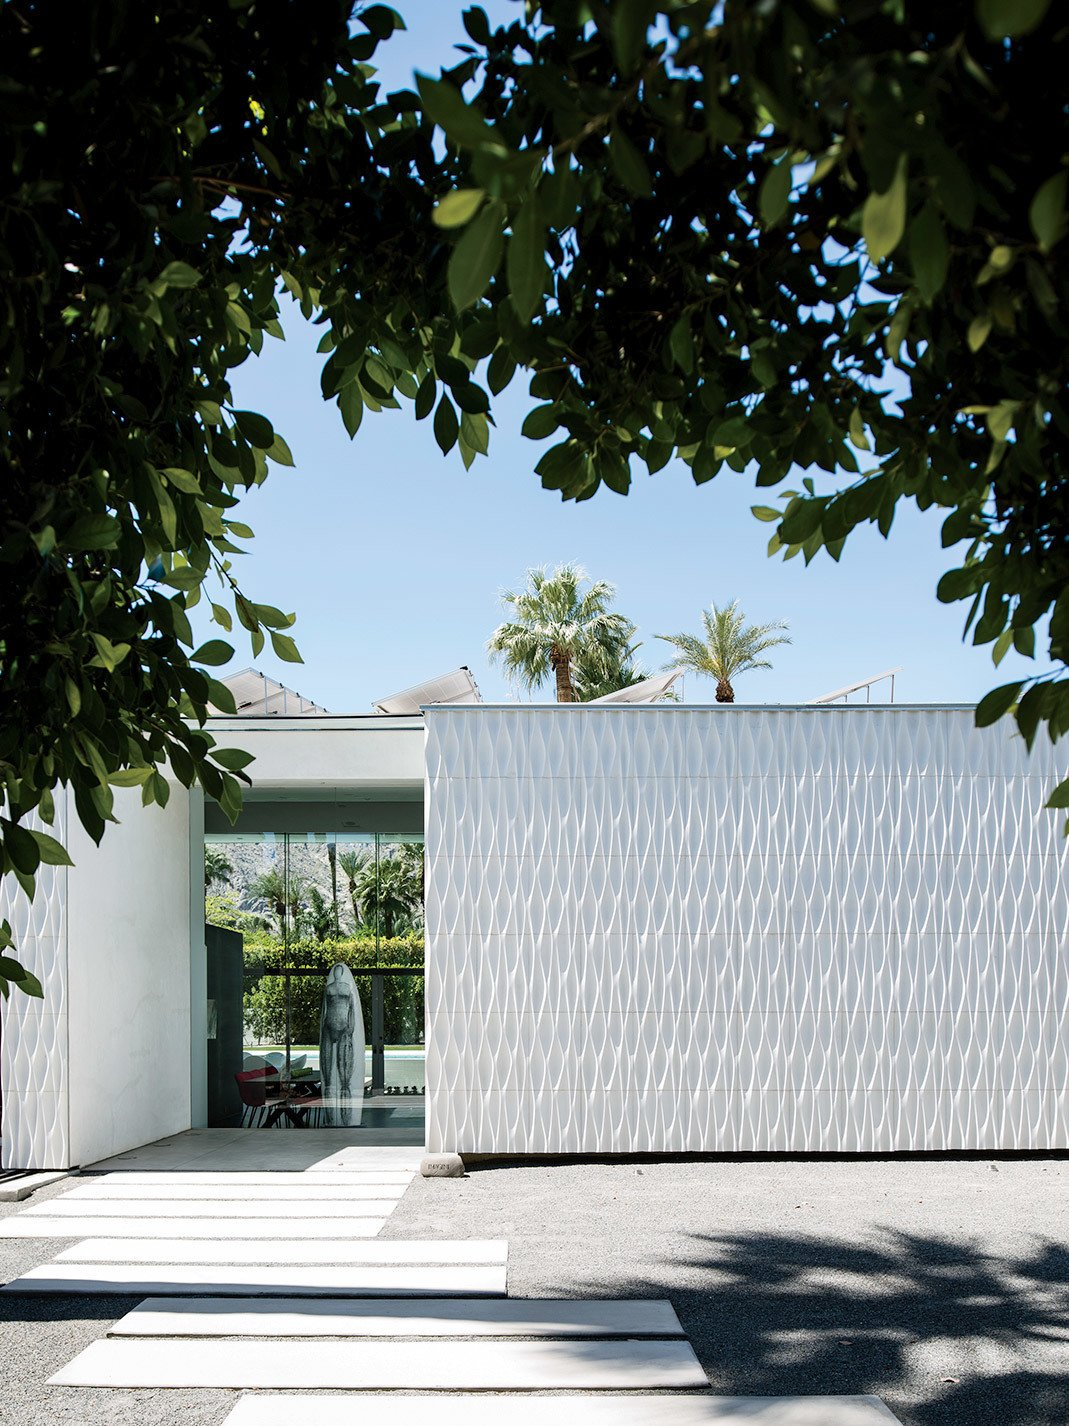 Home with white facade made of textured ceramic tiles